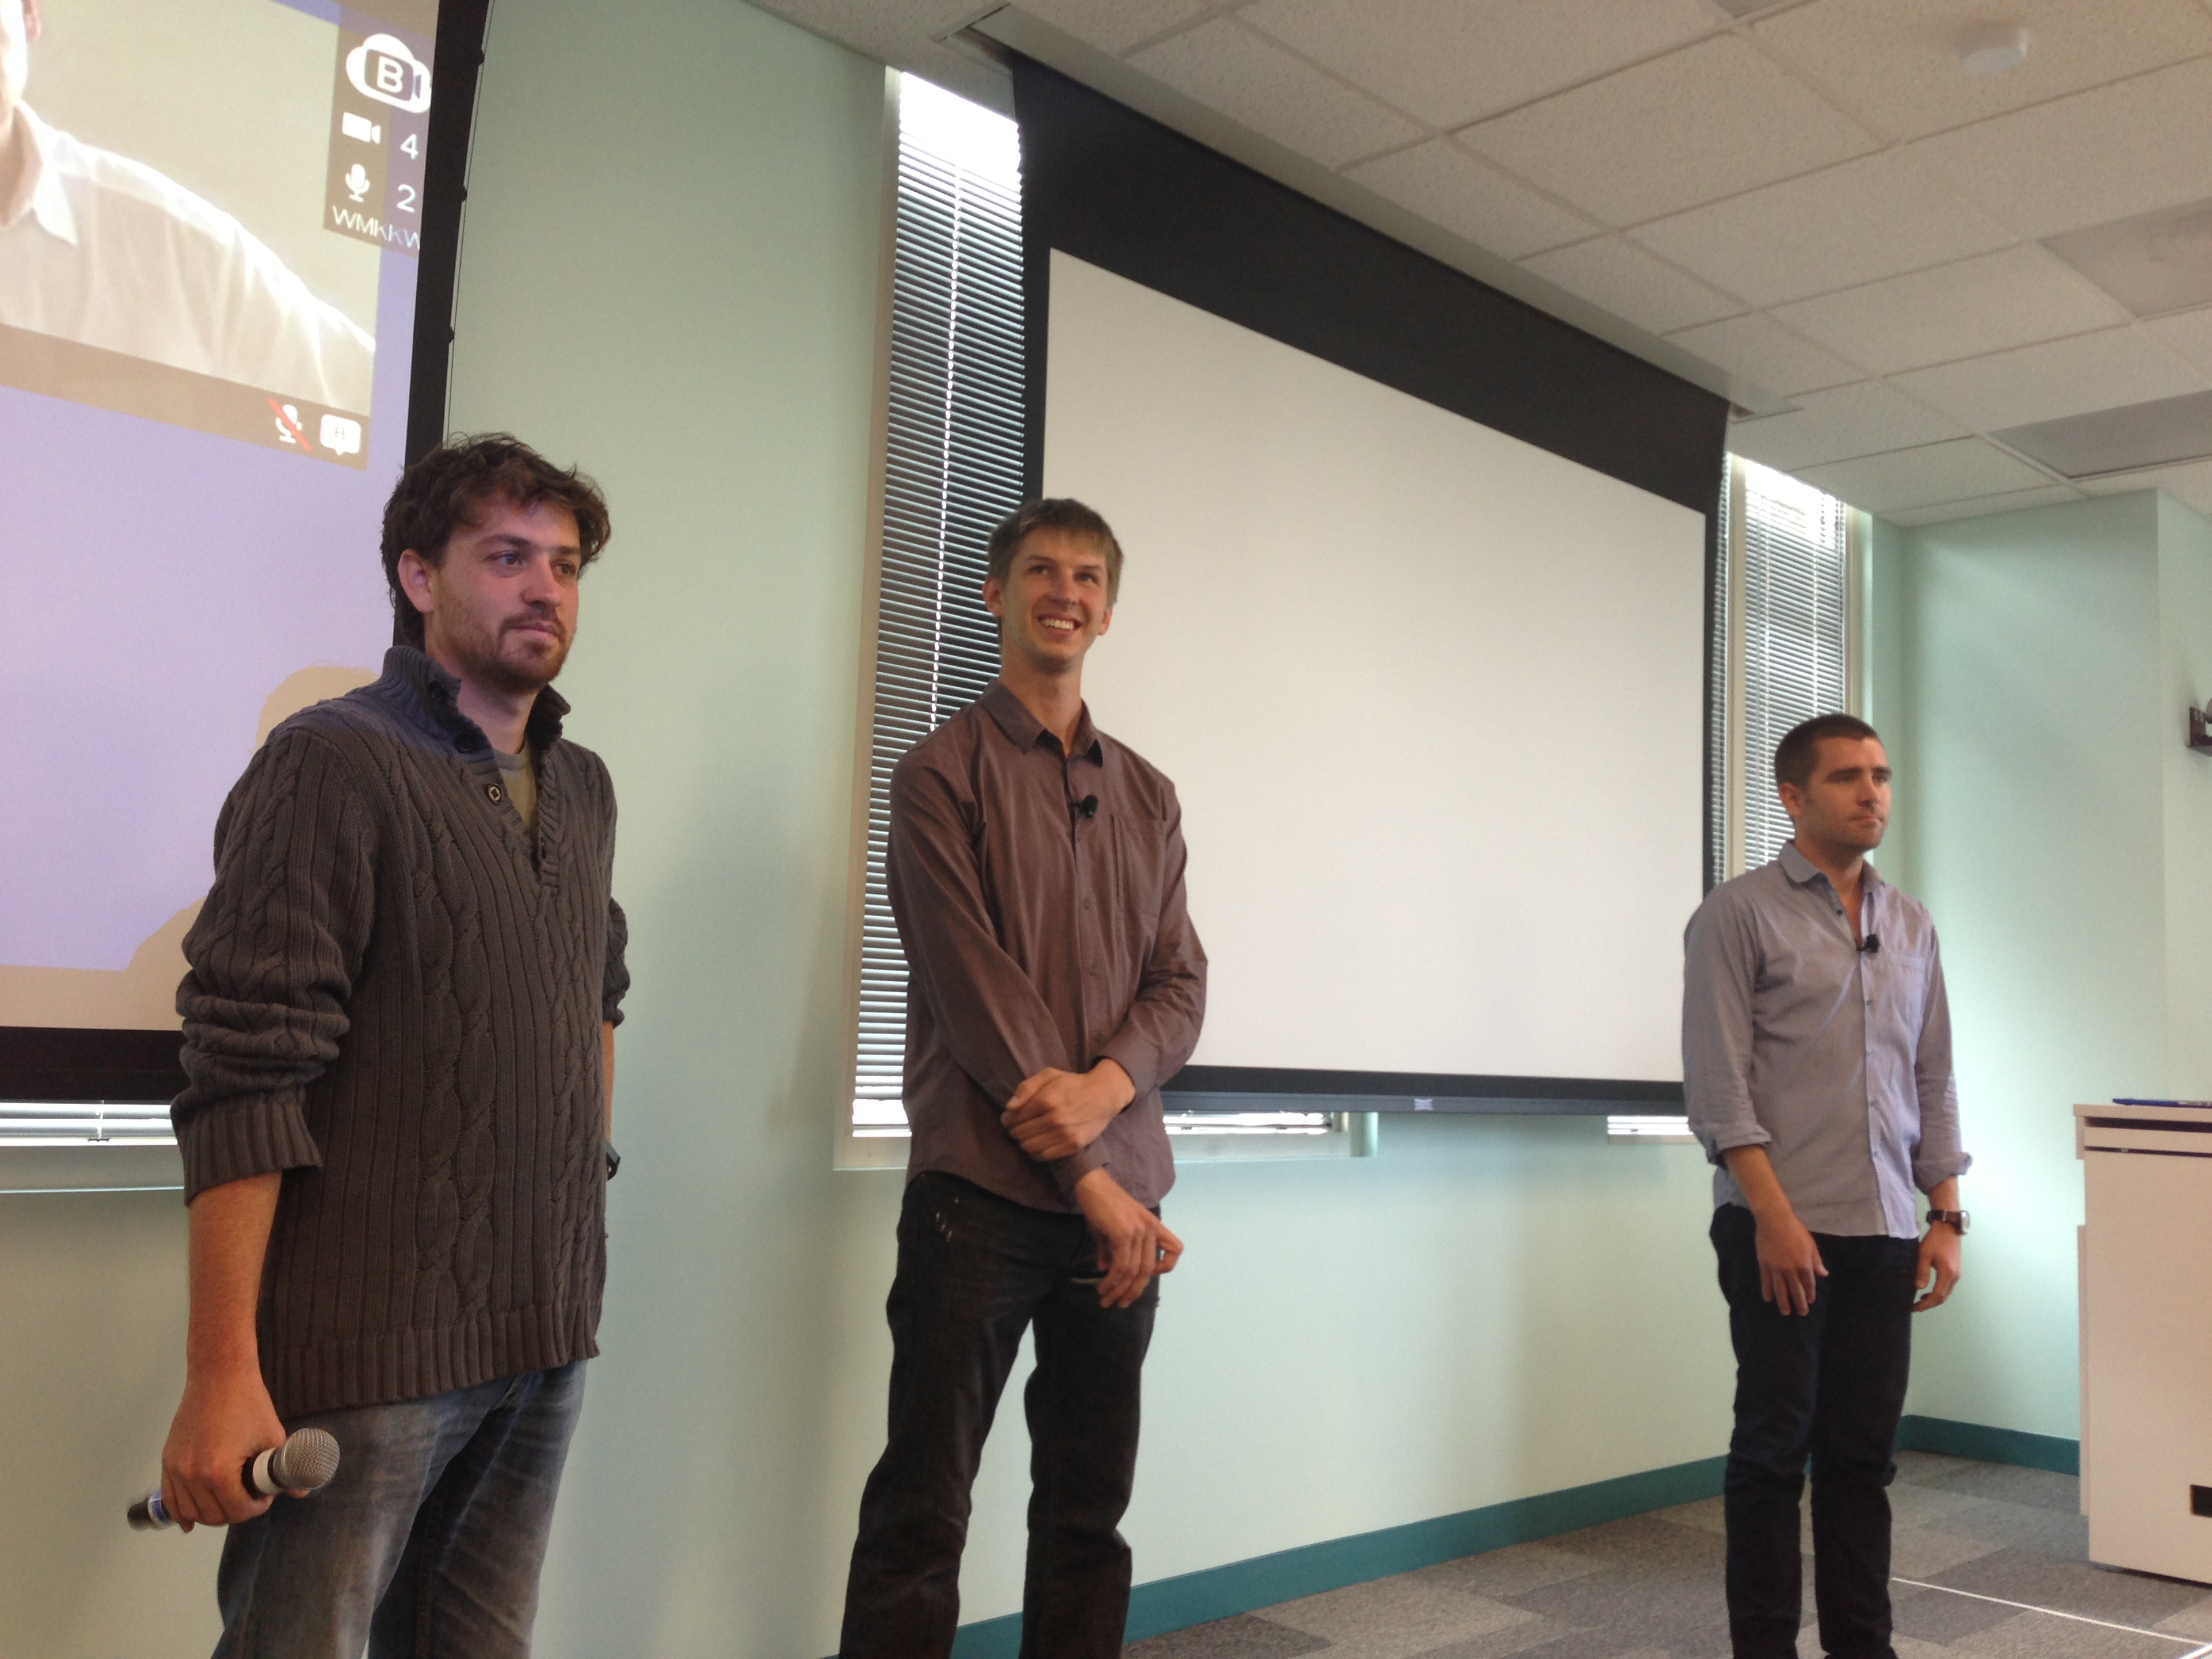 Chris Cathcart, Lars Backstrom, and Chris Cox talk with reporters in Menlo Park about how Facebook organizes the News Feed.